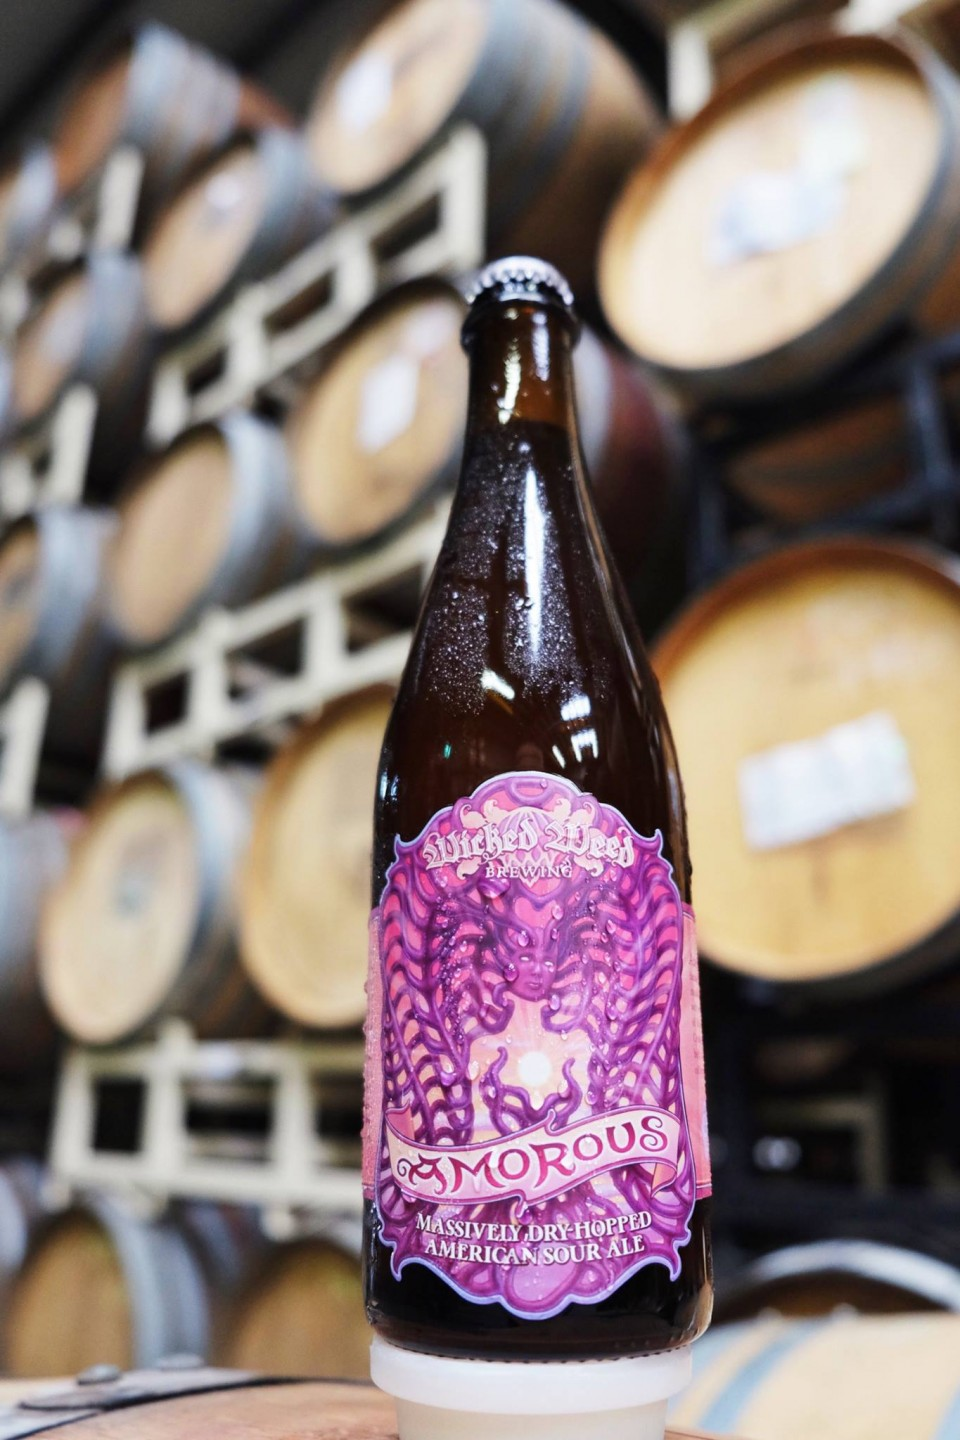 Wicked Weed Amorous